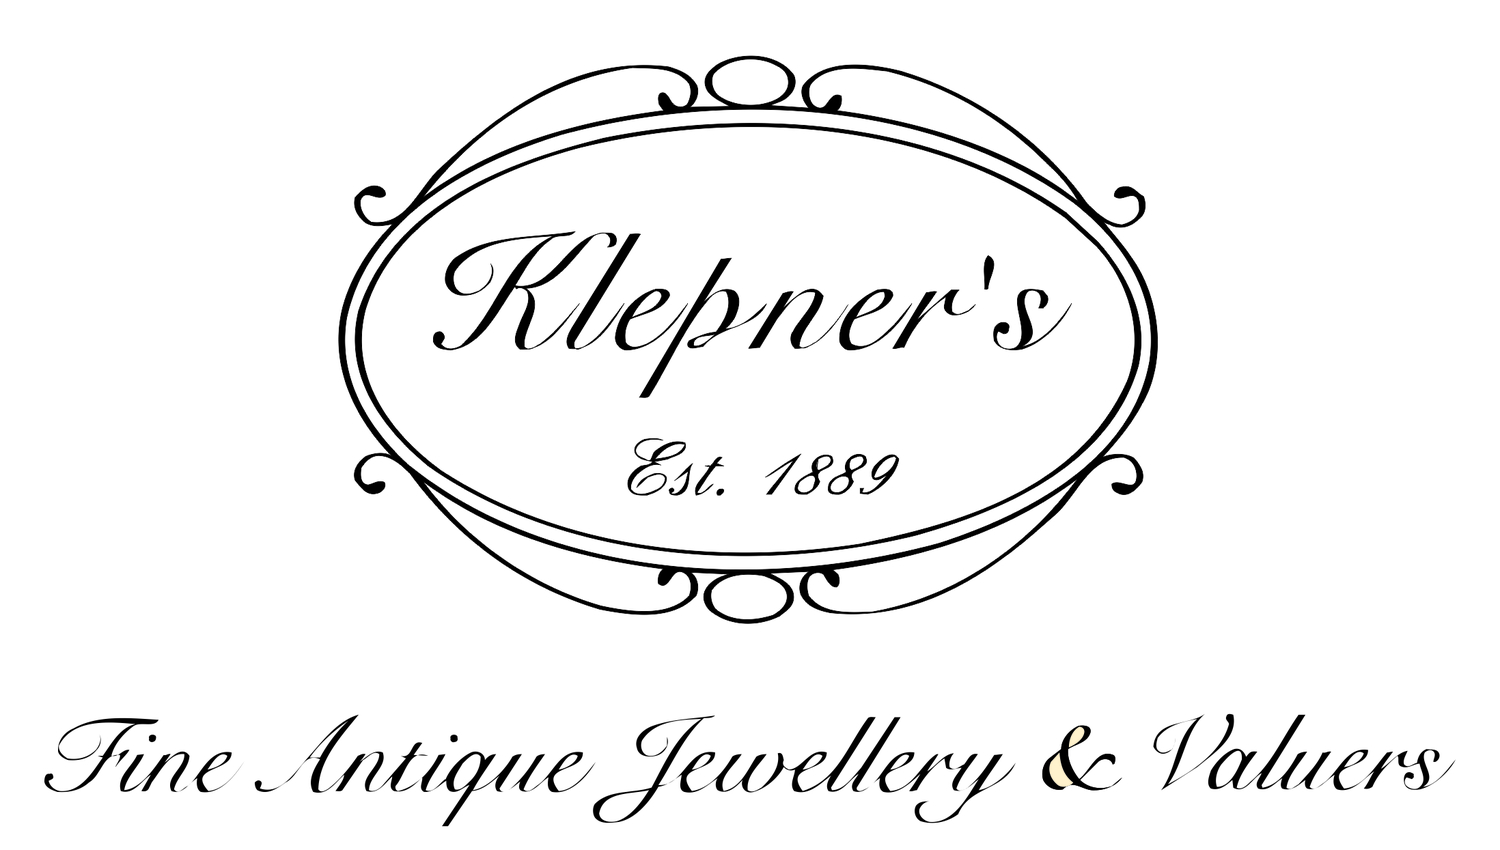 Klepner's Fine Antique Jewellery & Valuers- Antique Engagement Rings